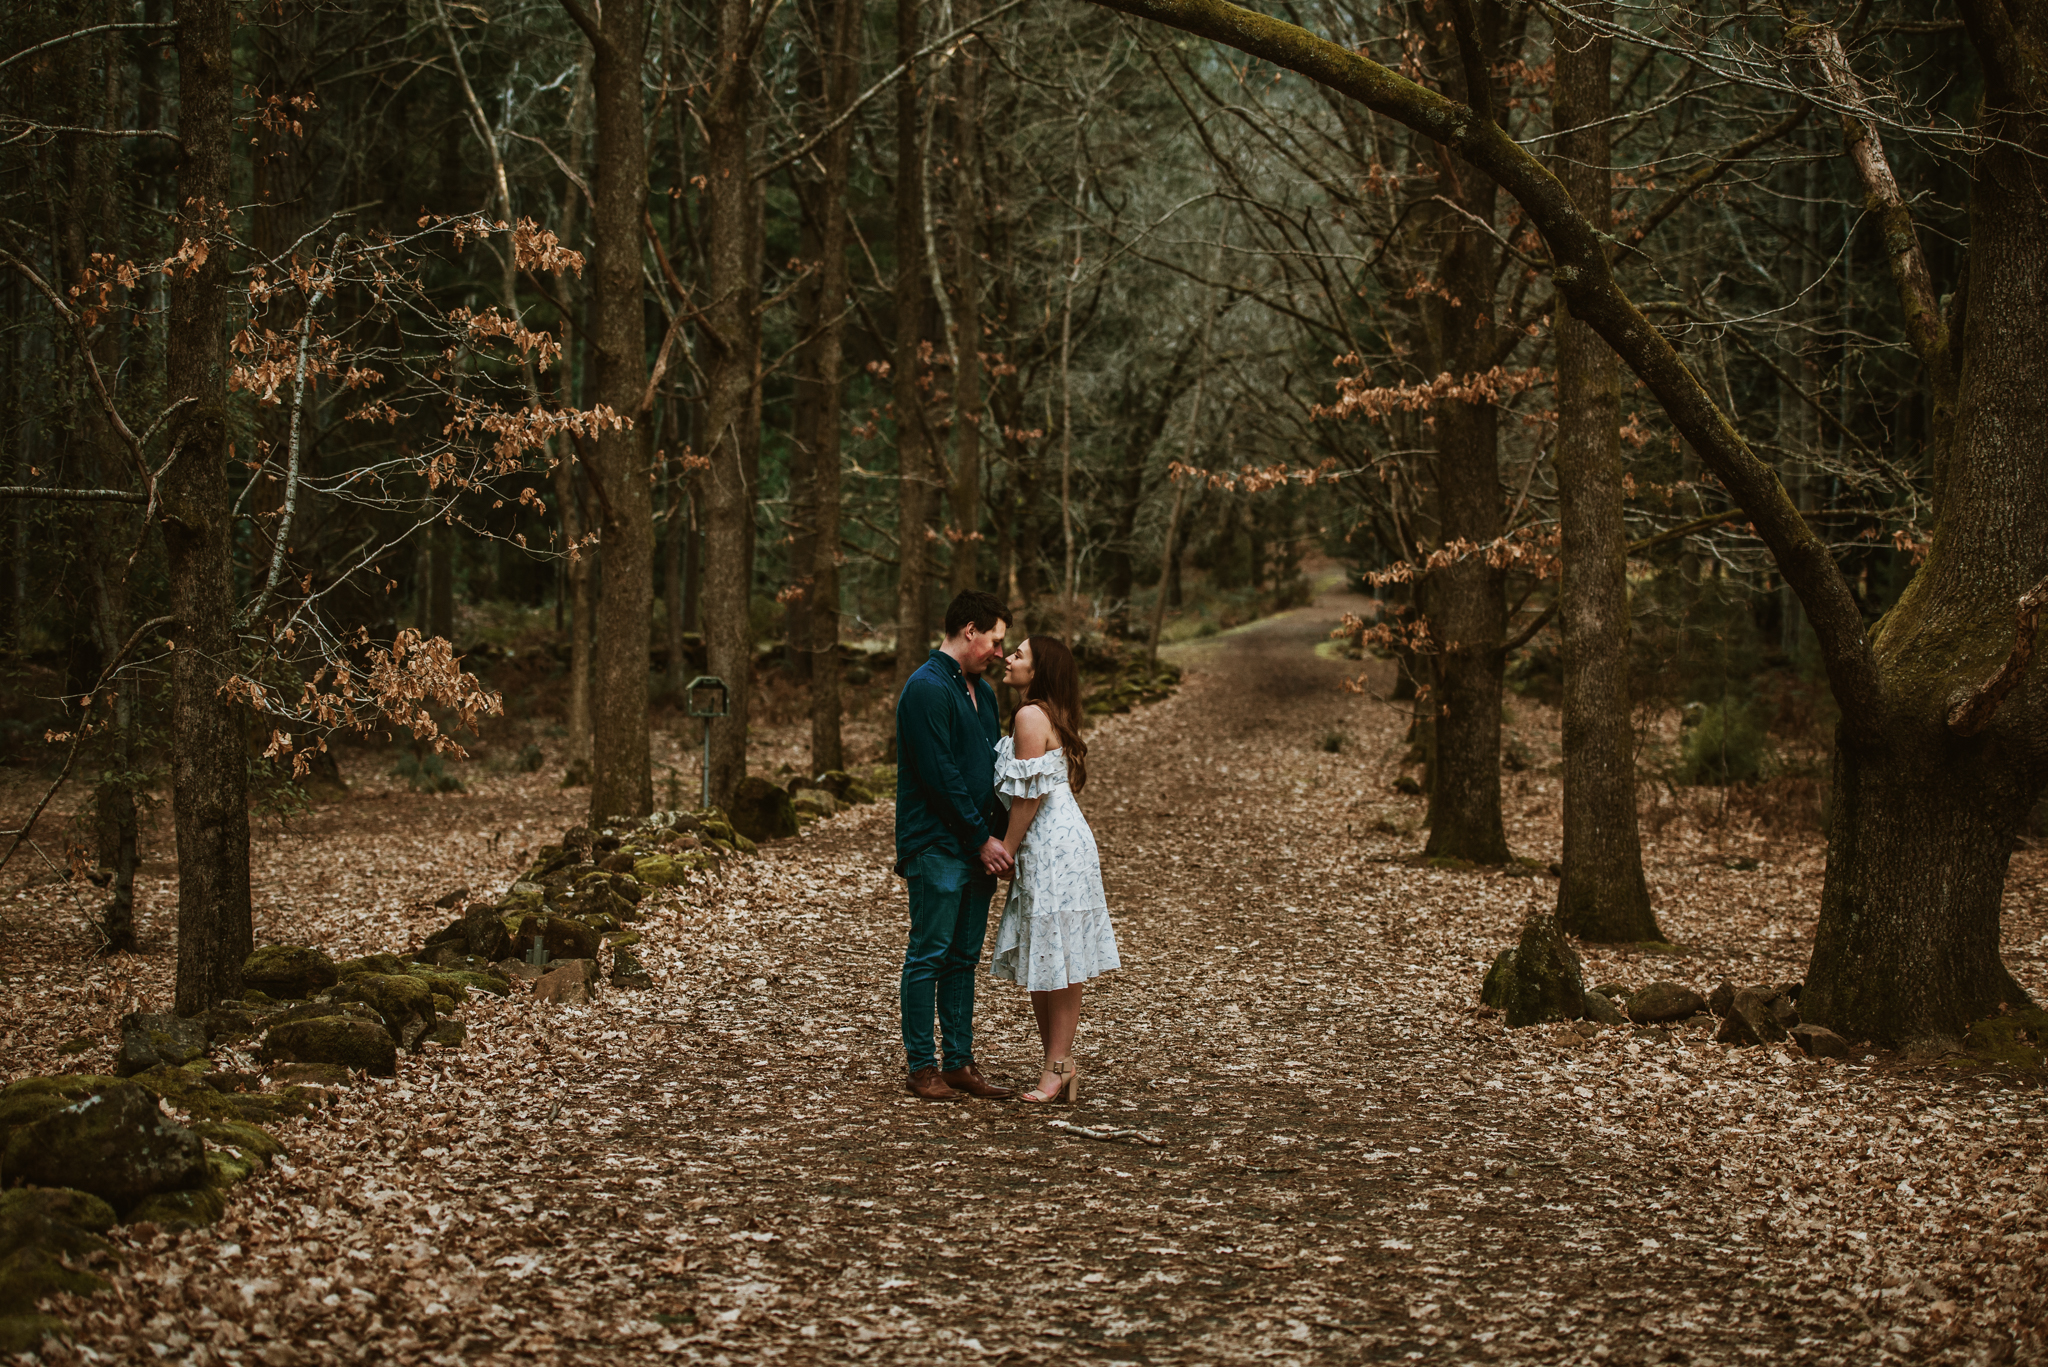 launceston couples photographer-37.jpg